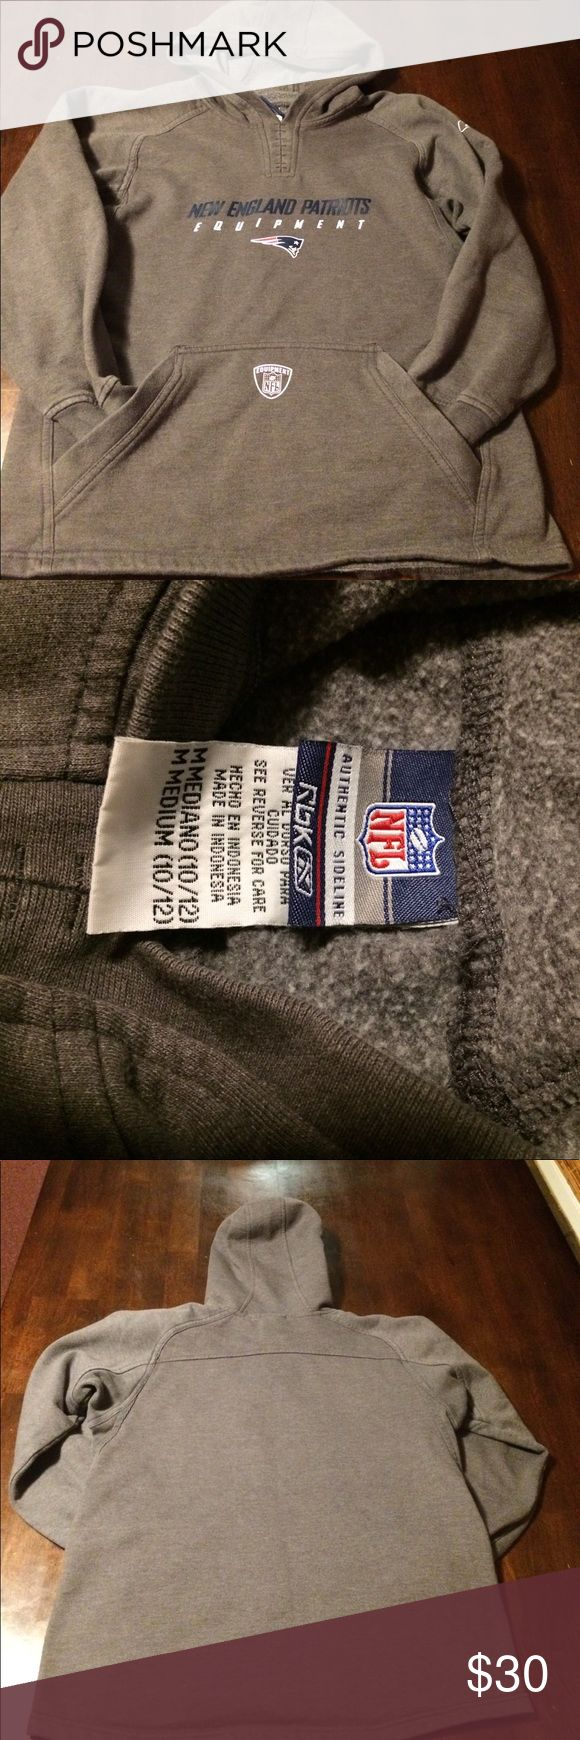 NewEngland Patriots sweatshirt Children's size 10/12 / medium reebok New England patriots sweatshirt, gently washed and worn no rips its stains., official NFL merchandise, purchased at home stadium of the patriots. Shirts & Tops Sweatshirts & Hoodies